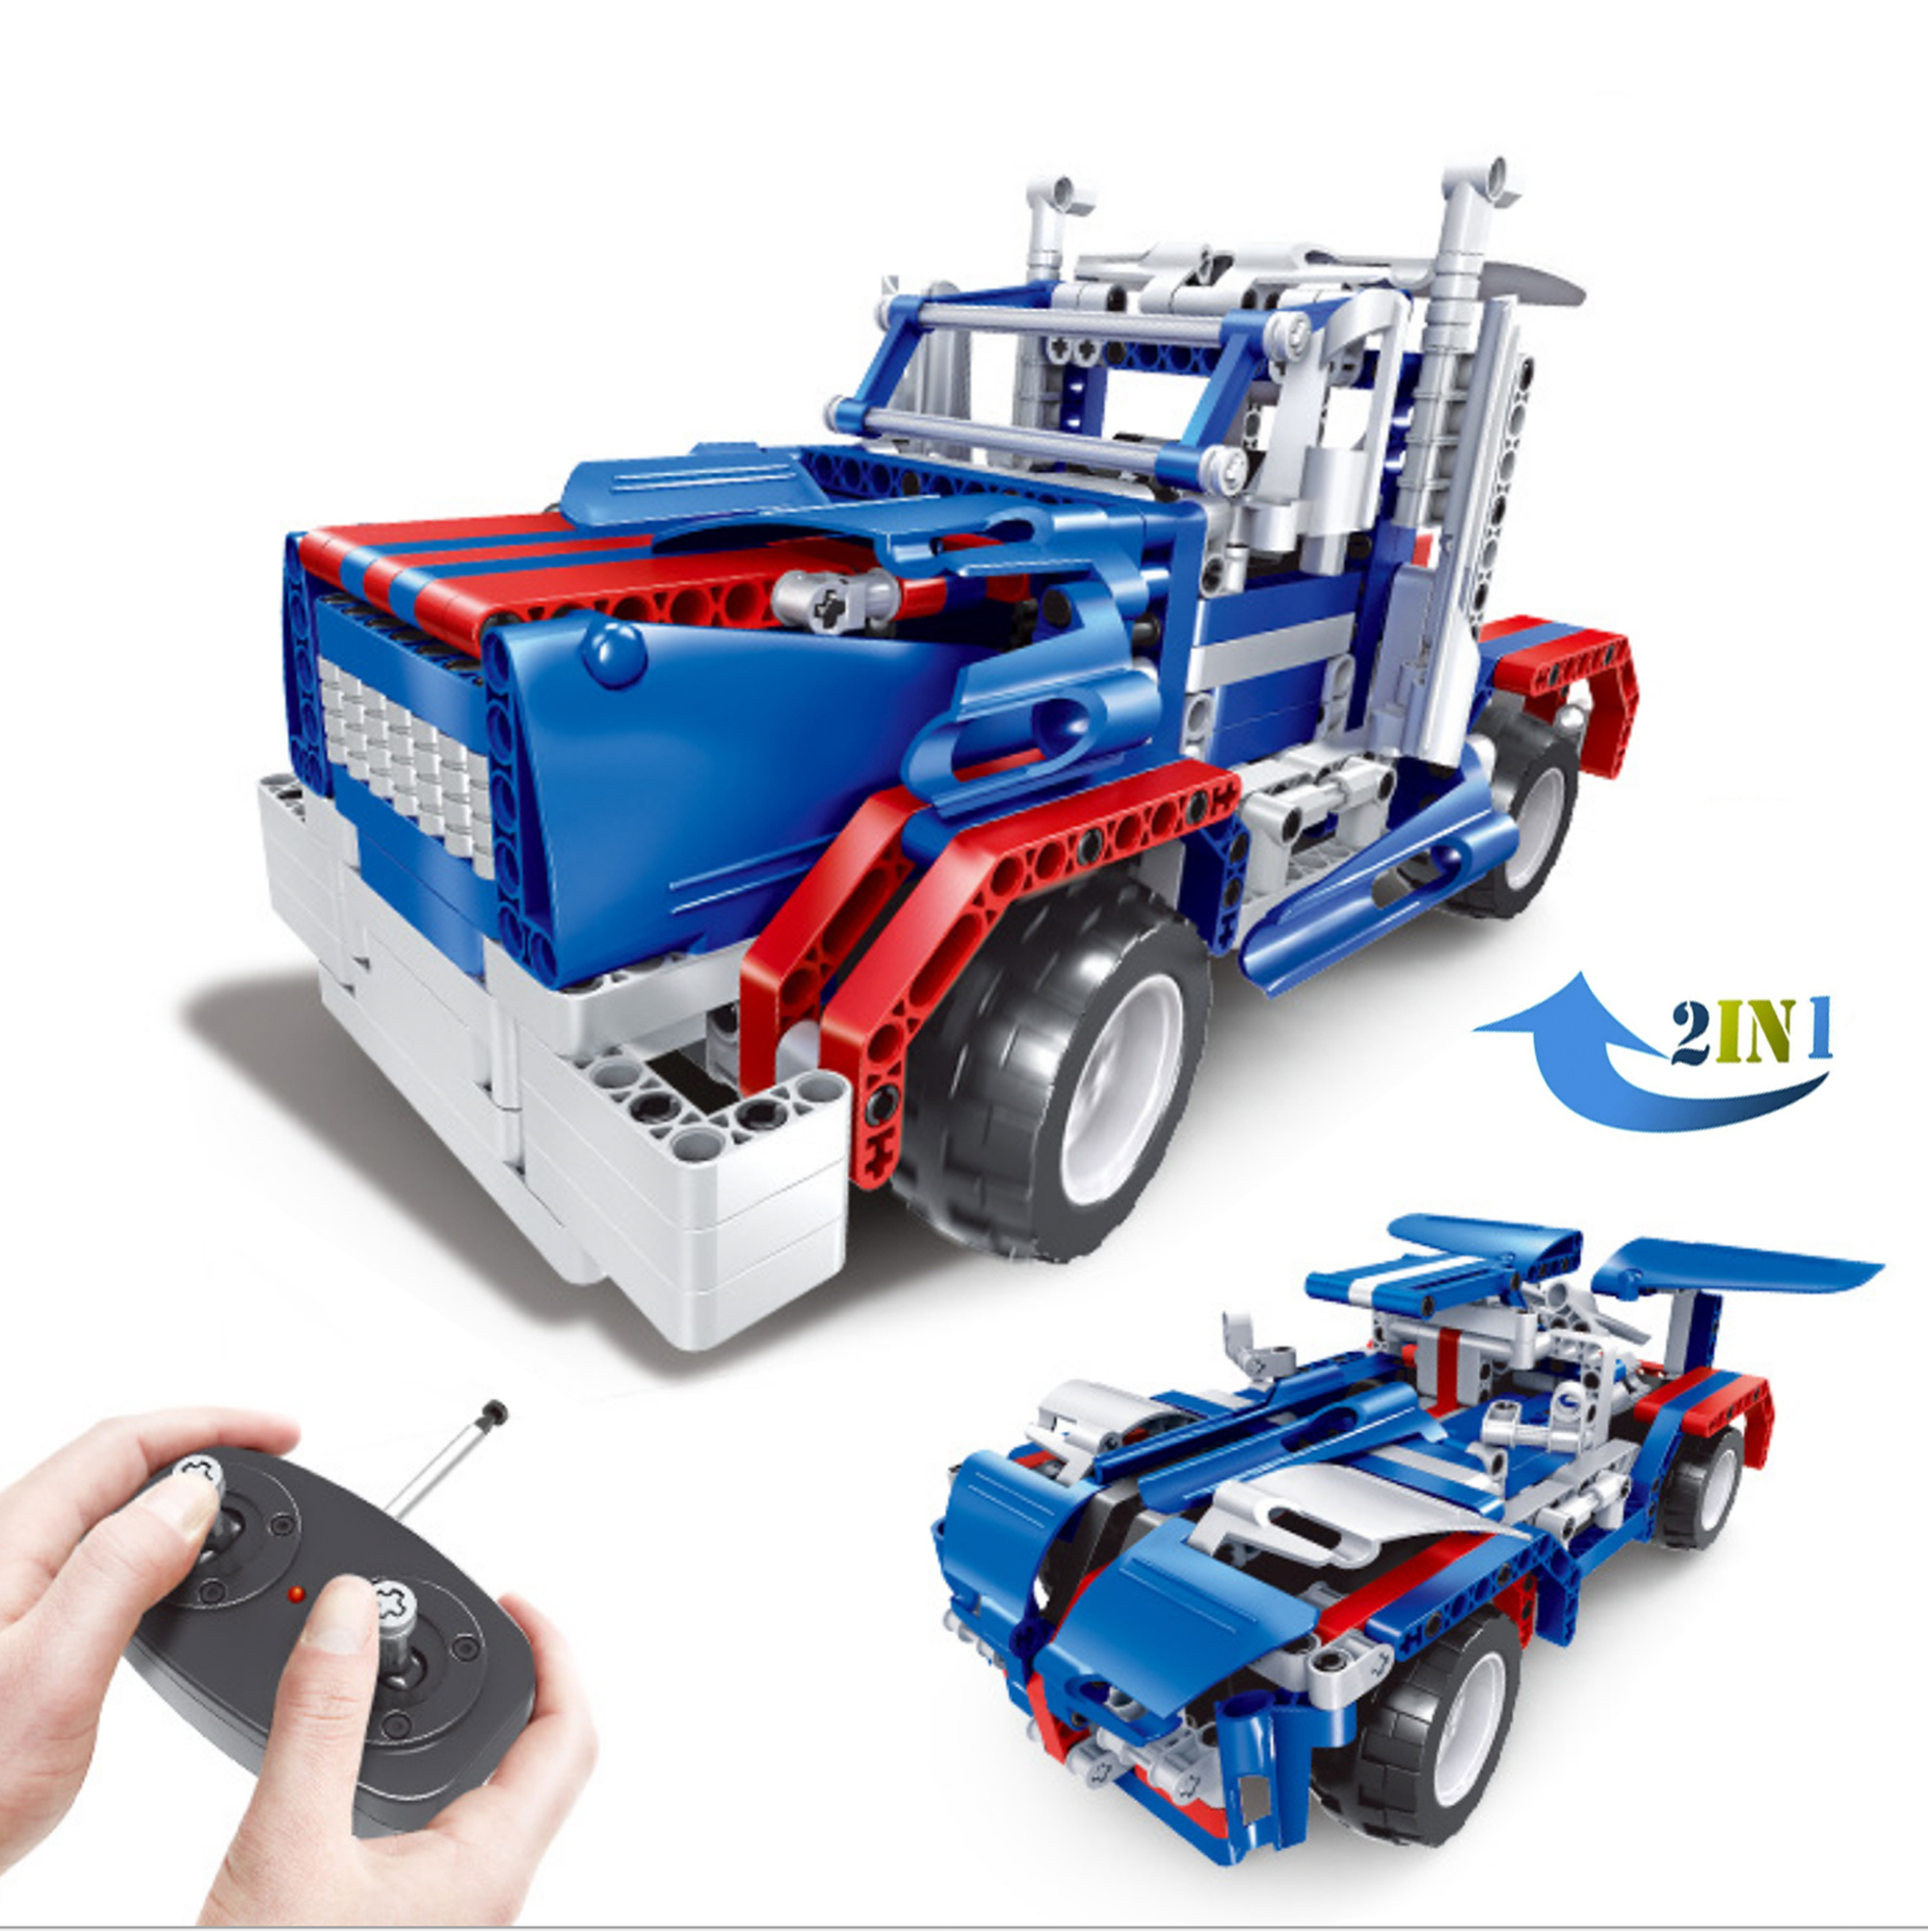 Remote Control Blue Semi-Truck Building Set